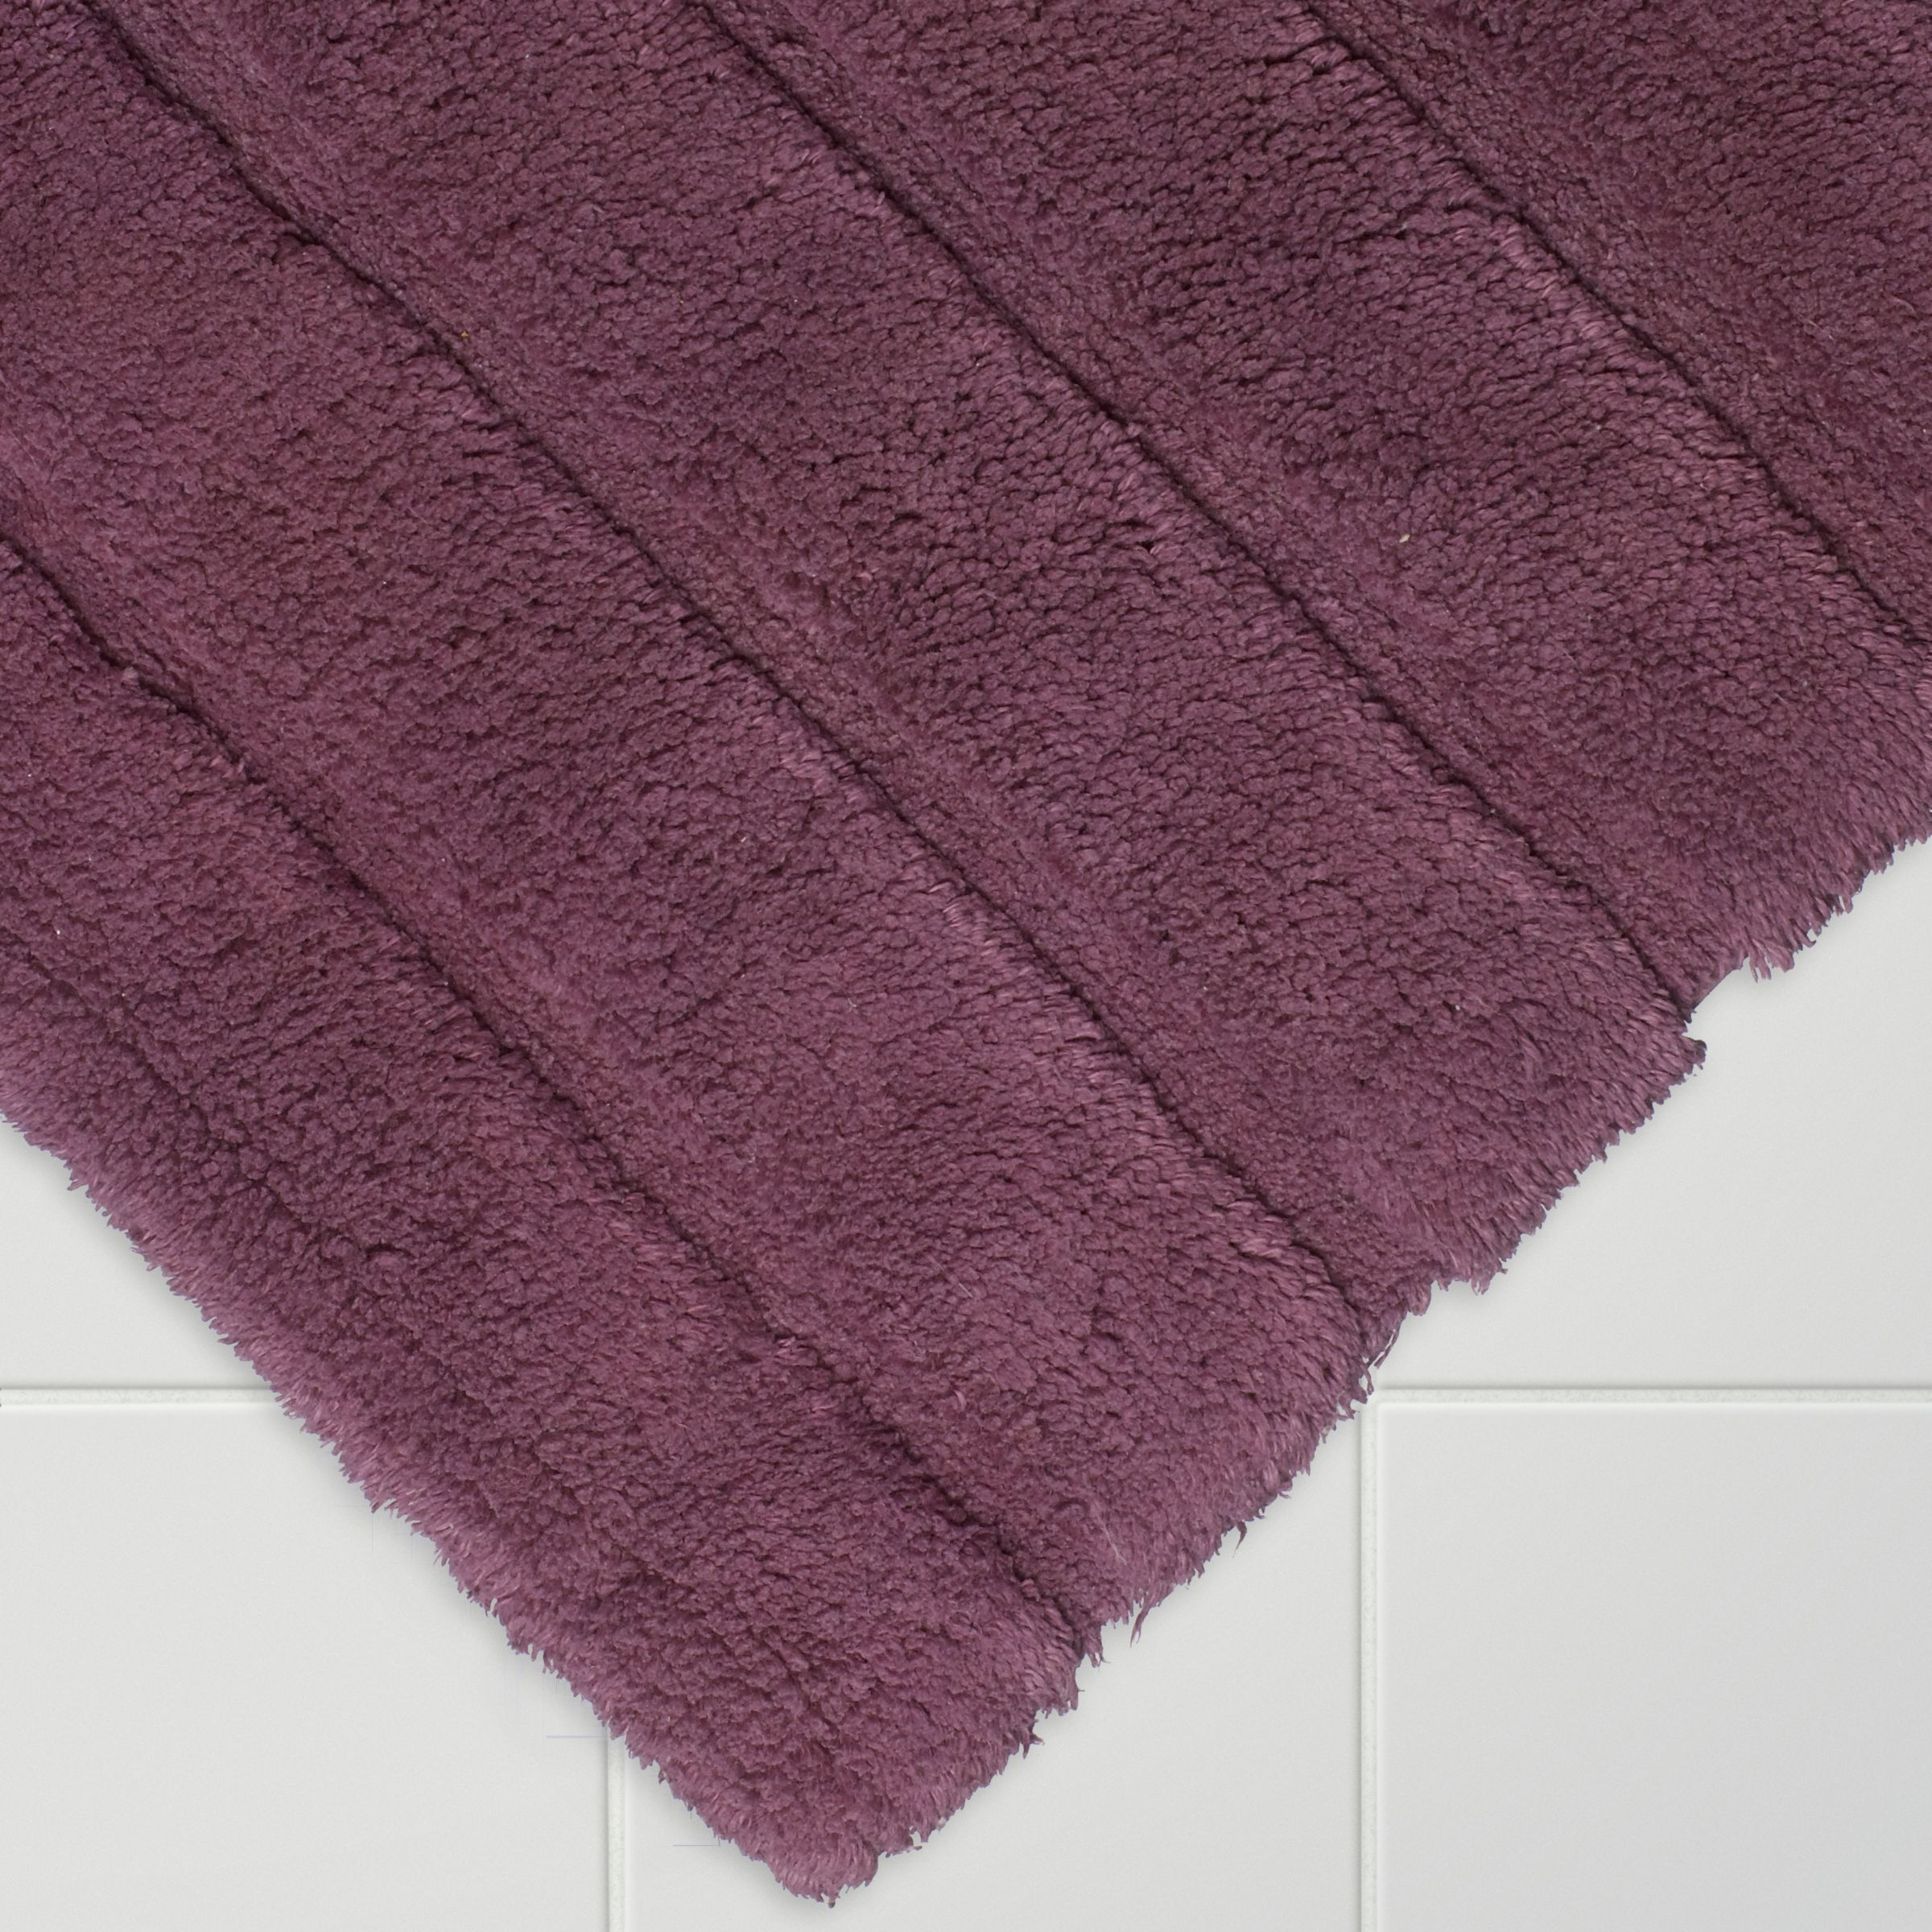 Bath, shower and pedestal mats